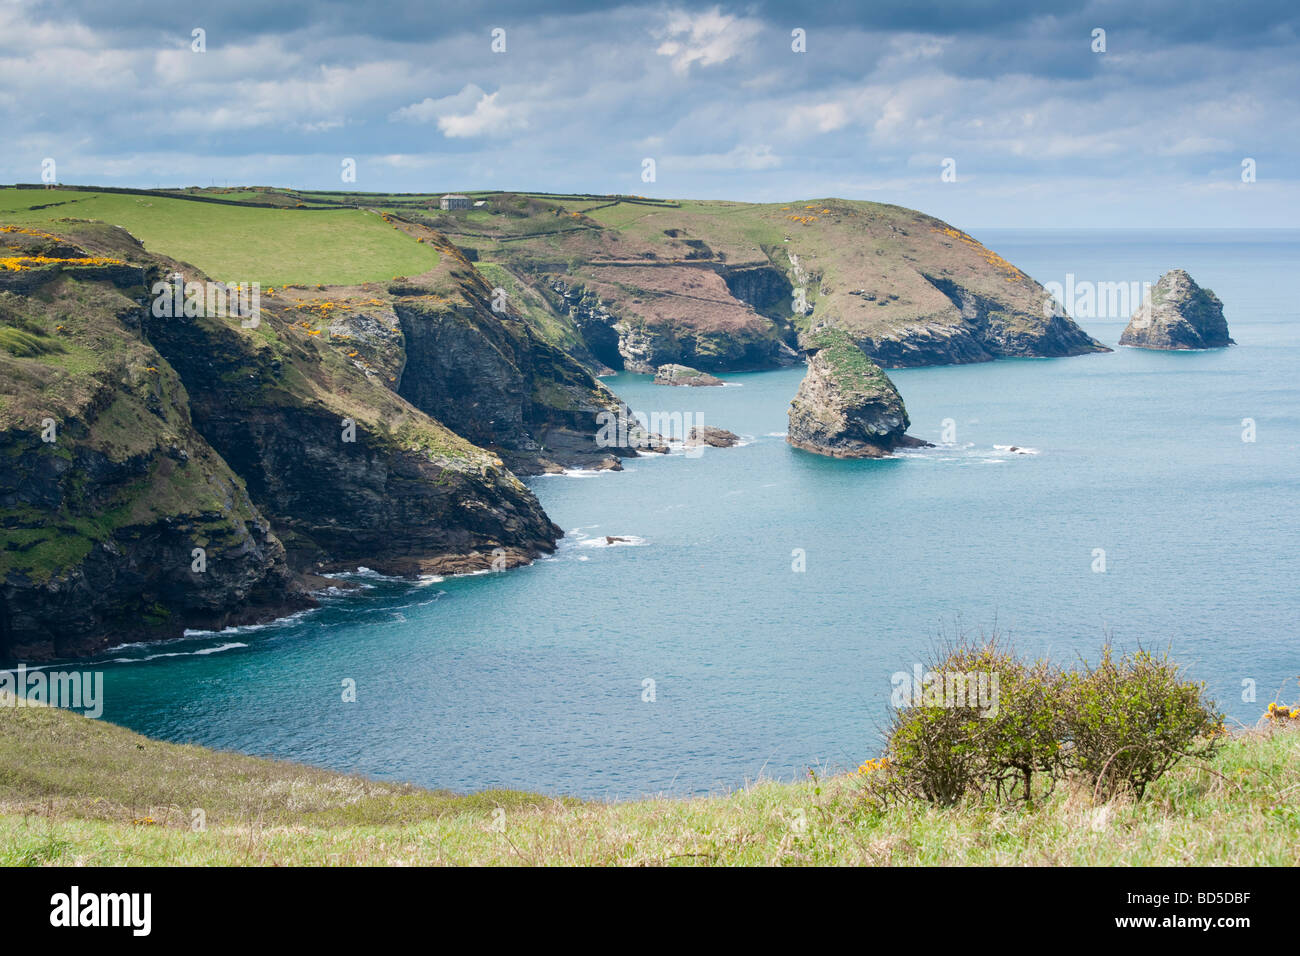 The coastline viewed from Boscastle to Short Island and Grower rock - Stock Image